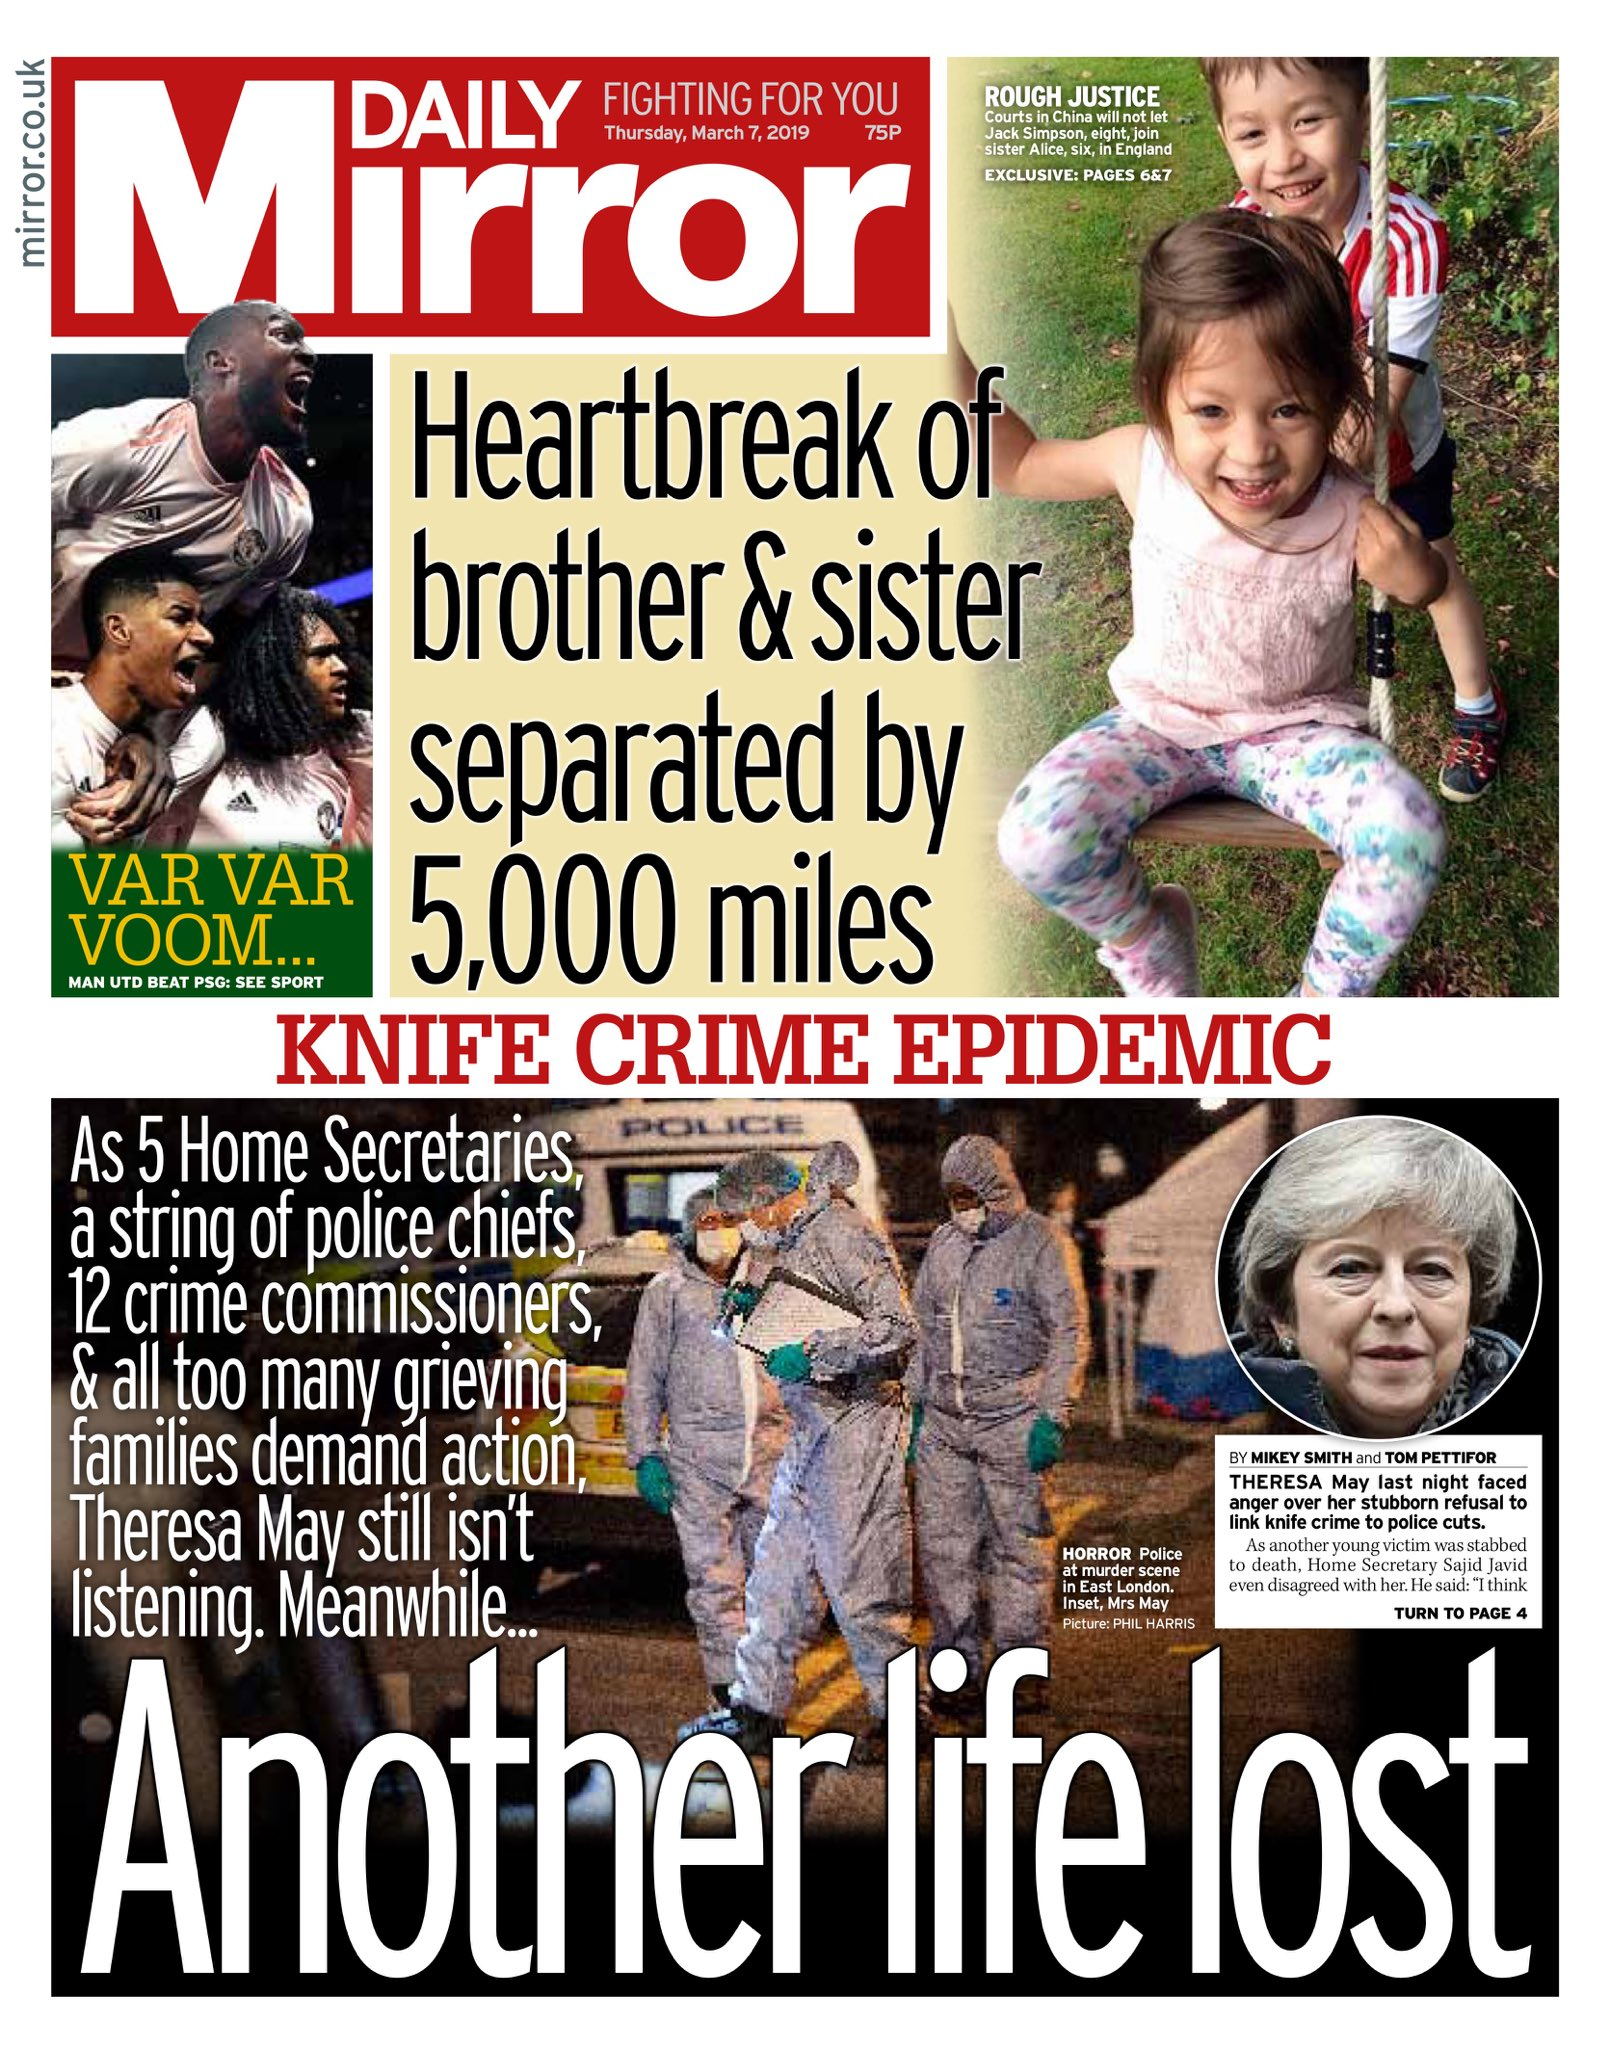 """Thursday's Daily MIRROR: """"Another life lost"""" #bbcpapers #tomorrowspaperstoday https://t.co/0IFTmCoS2M"""